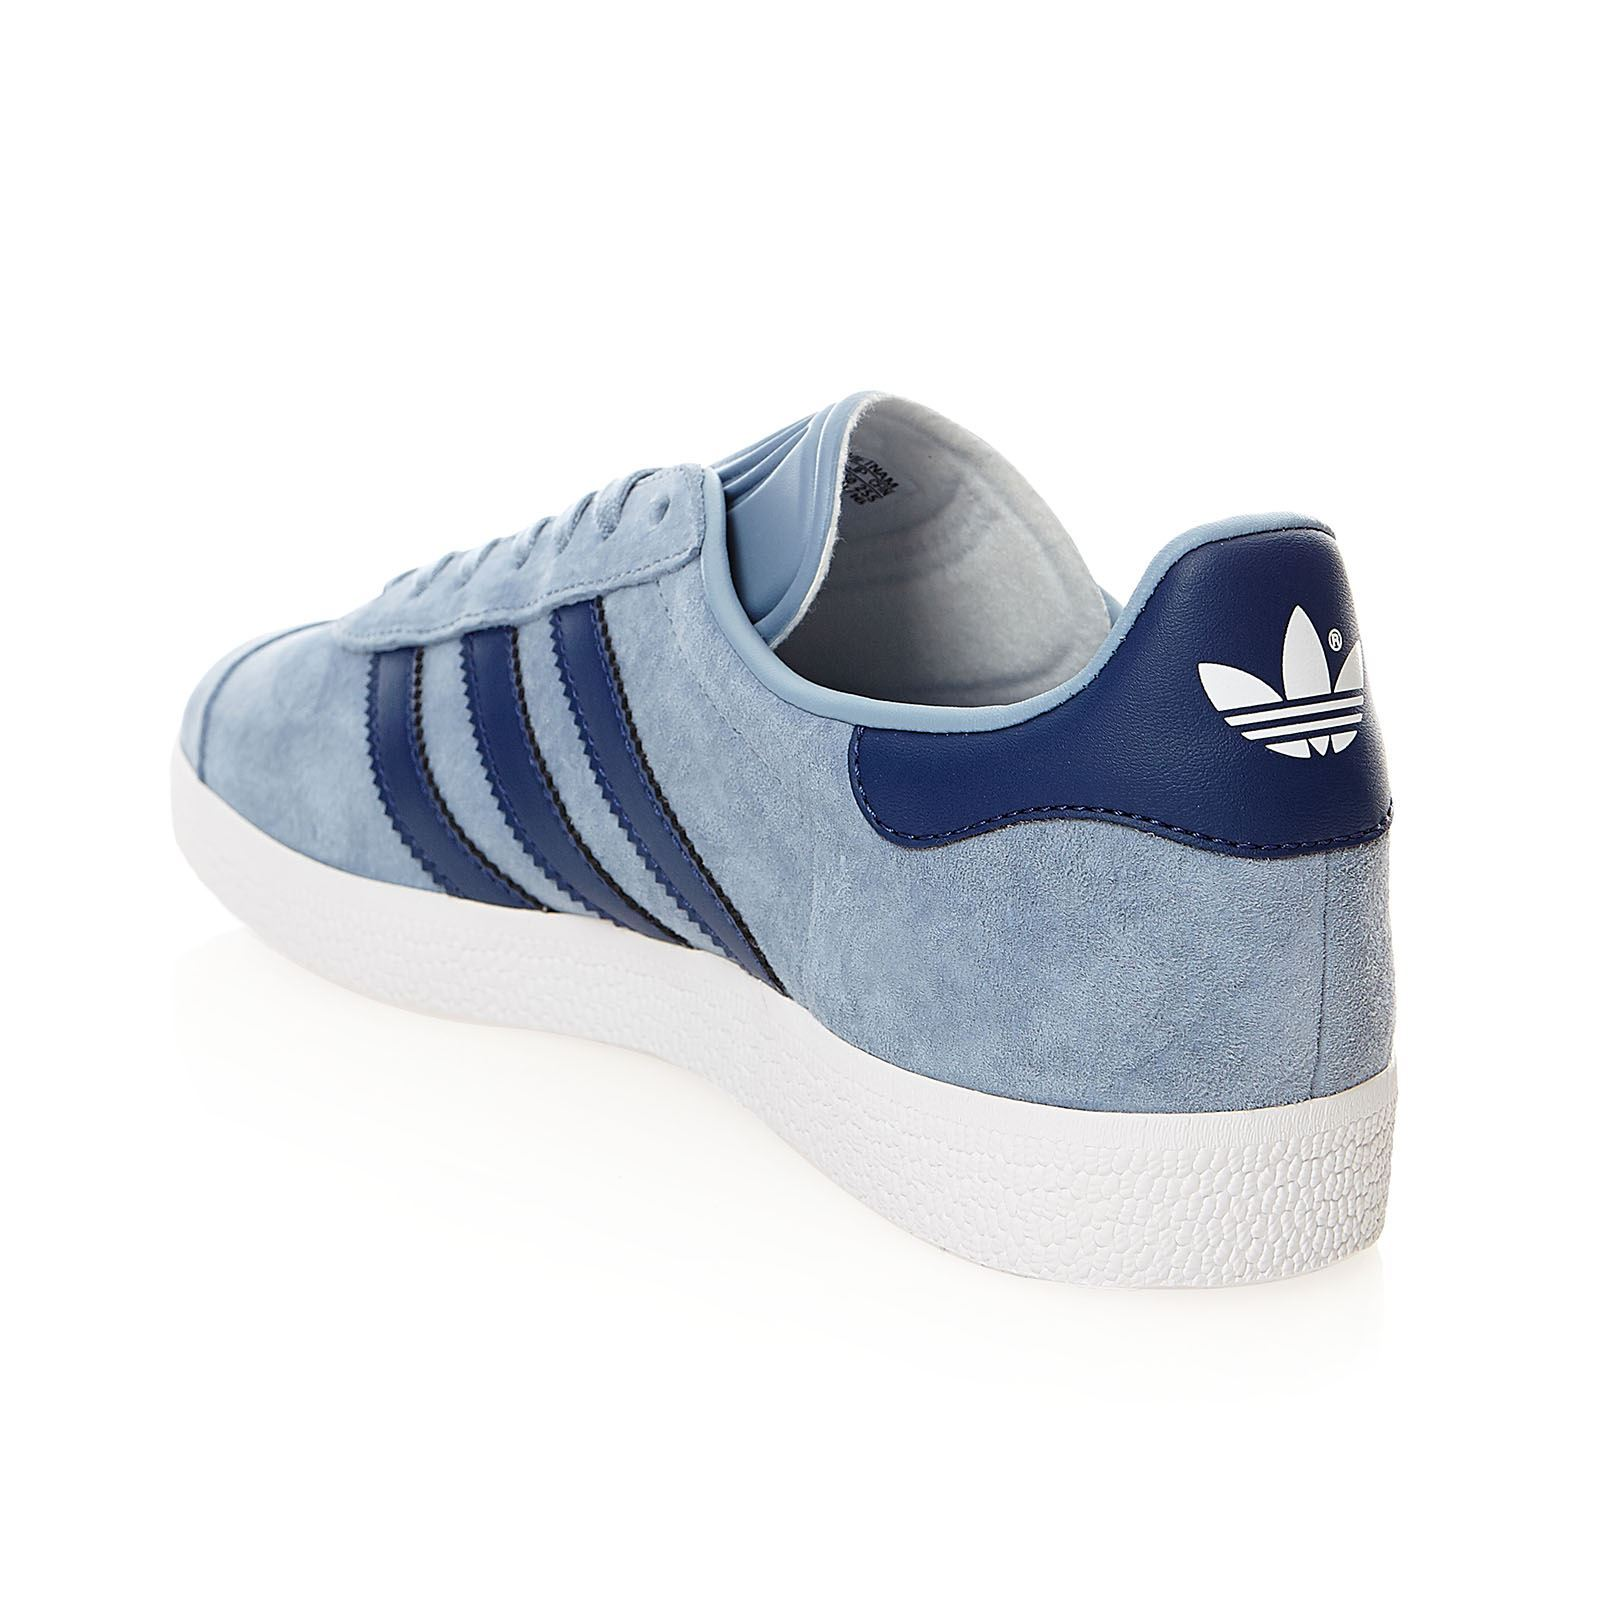 adidas originals gazelle w baskets en cuir bleu ciel brandalley. Black Bedroom Furniture Sets. Home Design Ideas